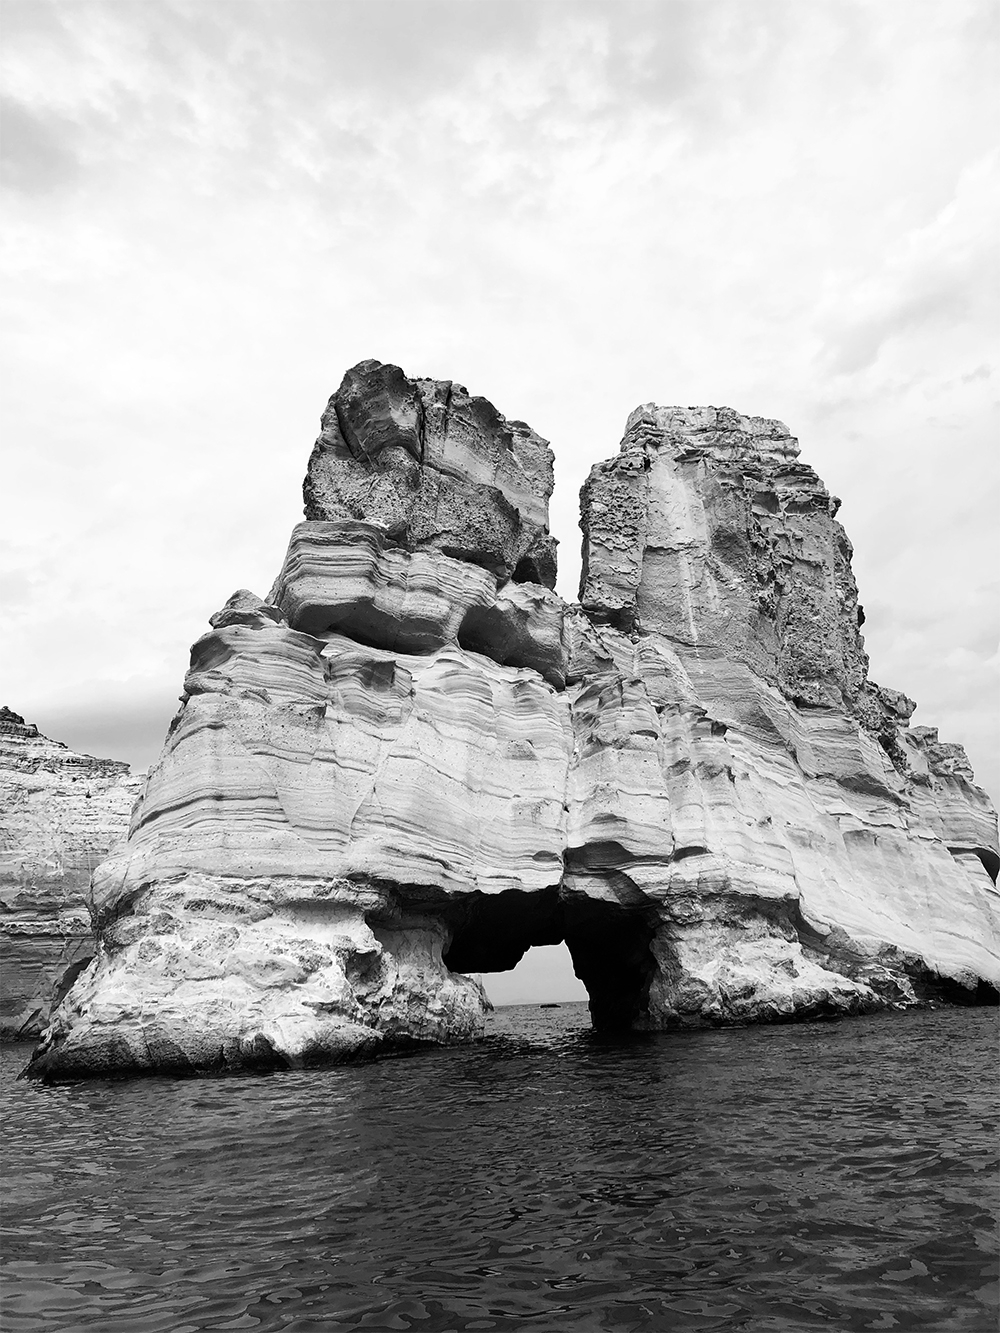 A black and white image of a large rock arch in the ocean with a divide that continues halfway down the centre.